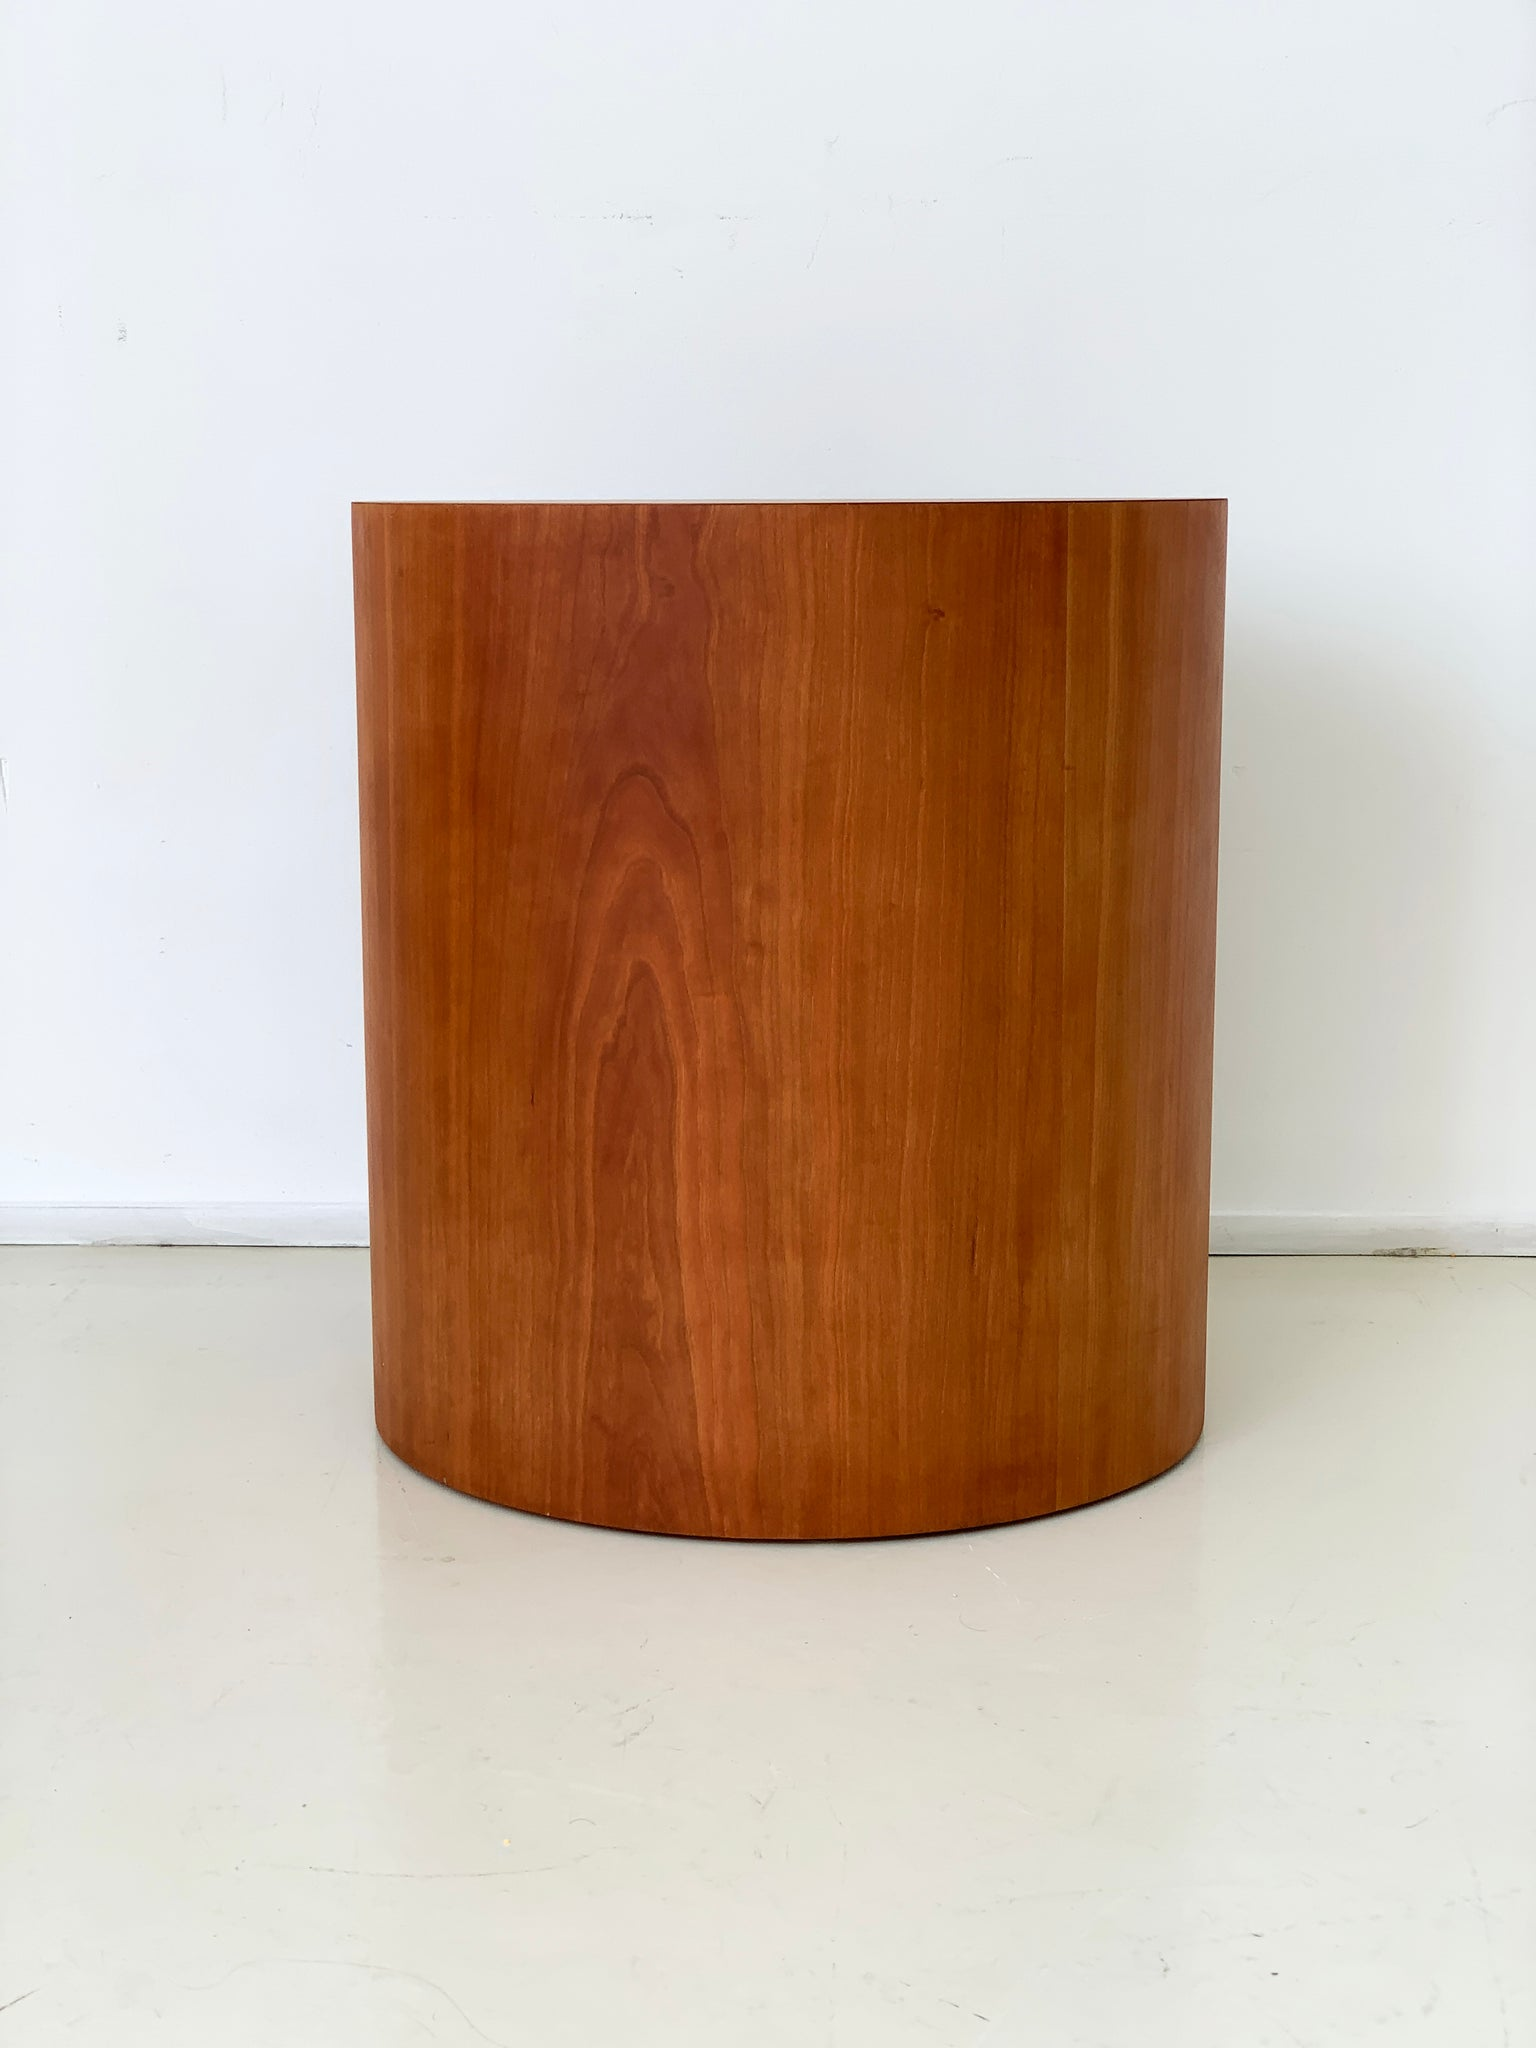 1970s Cherry Wood Drum Side Table